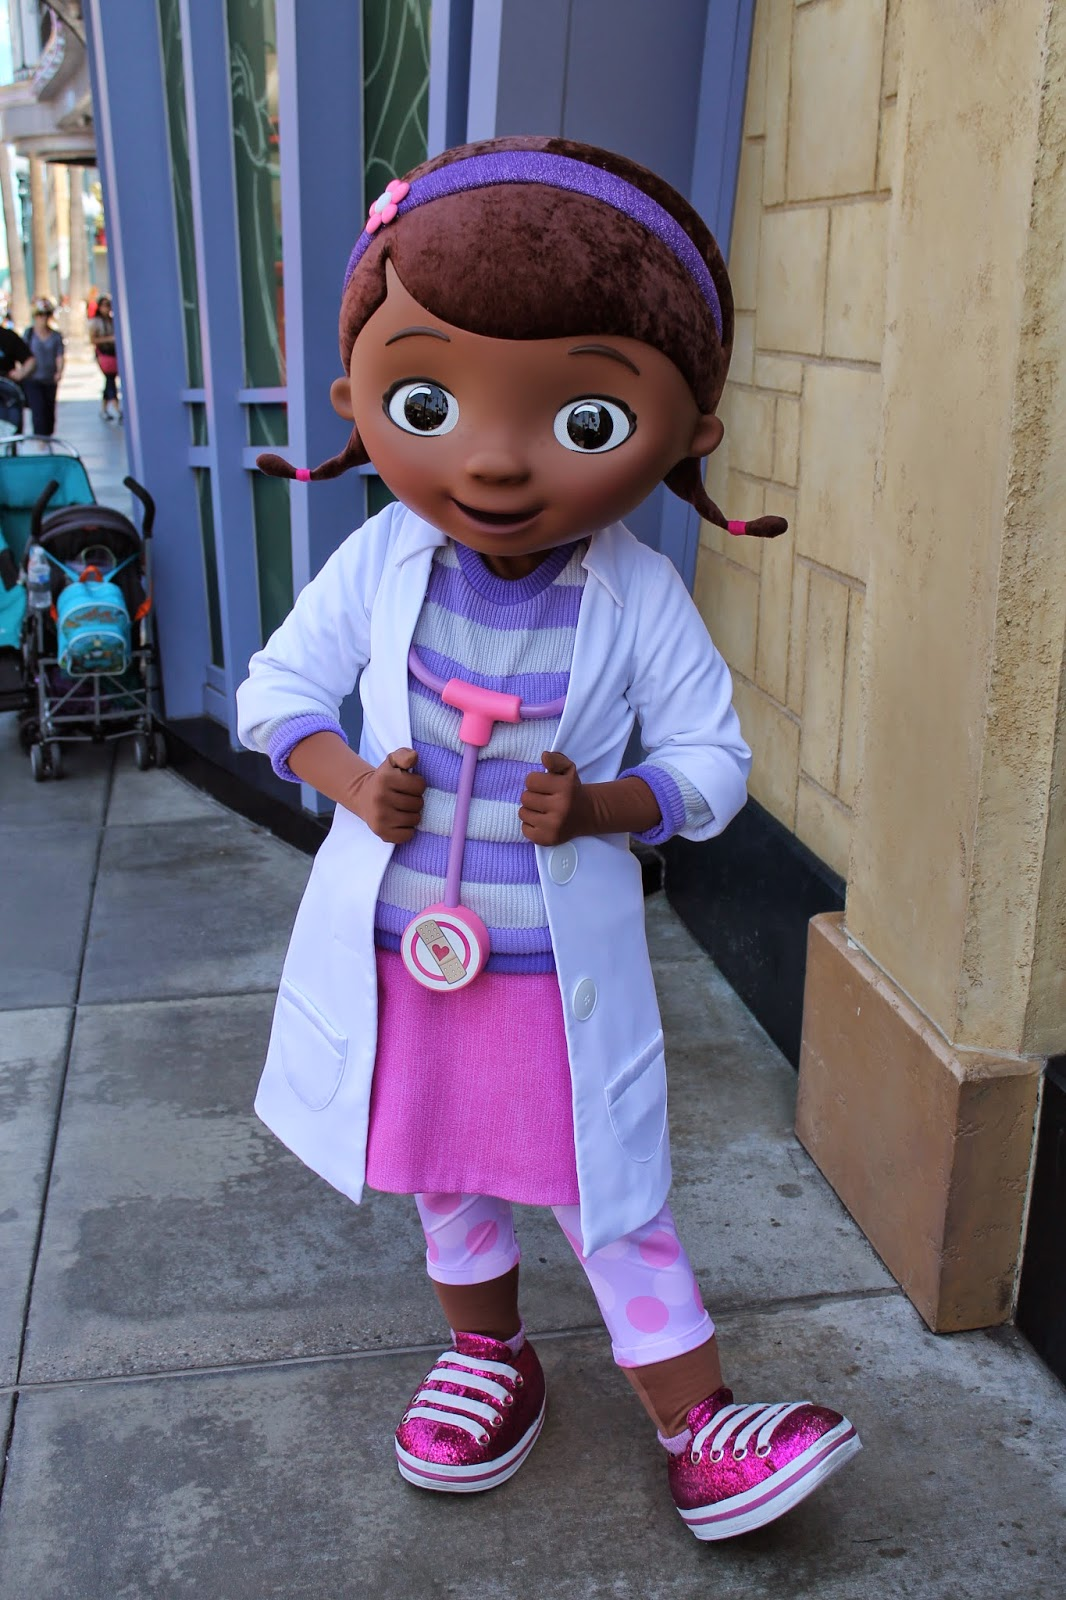 Doc McStuffins at Disney Character Central